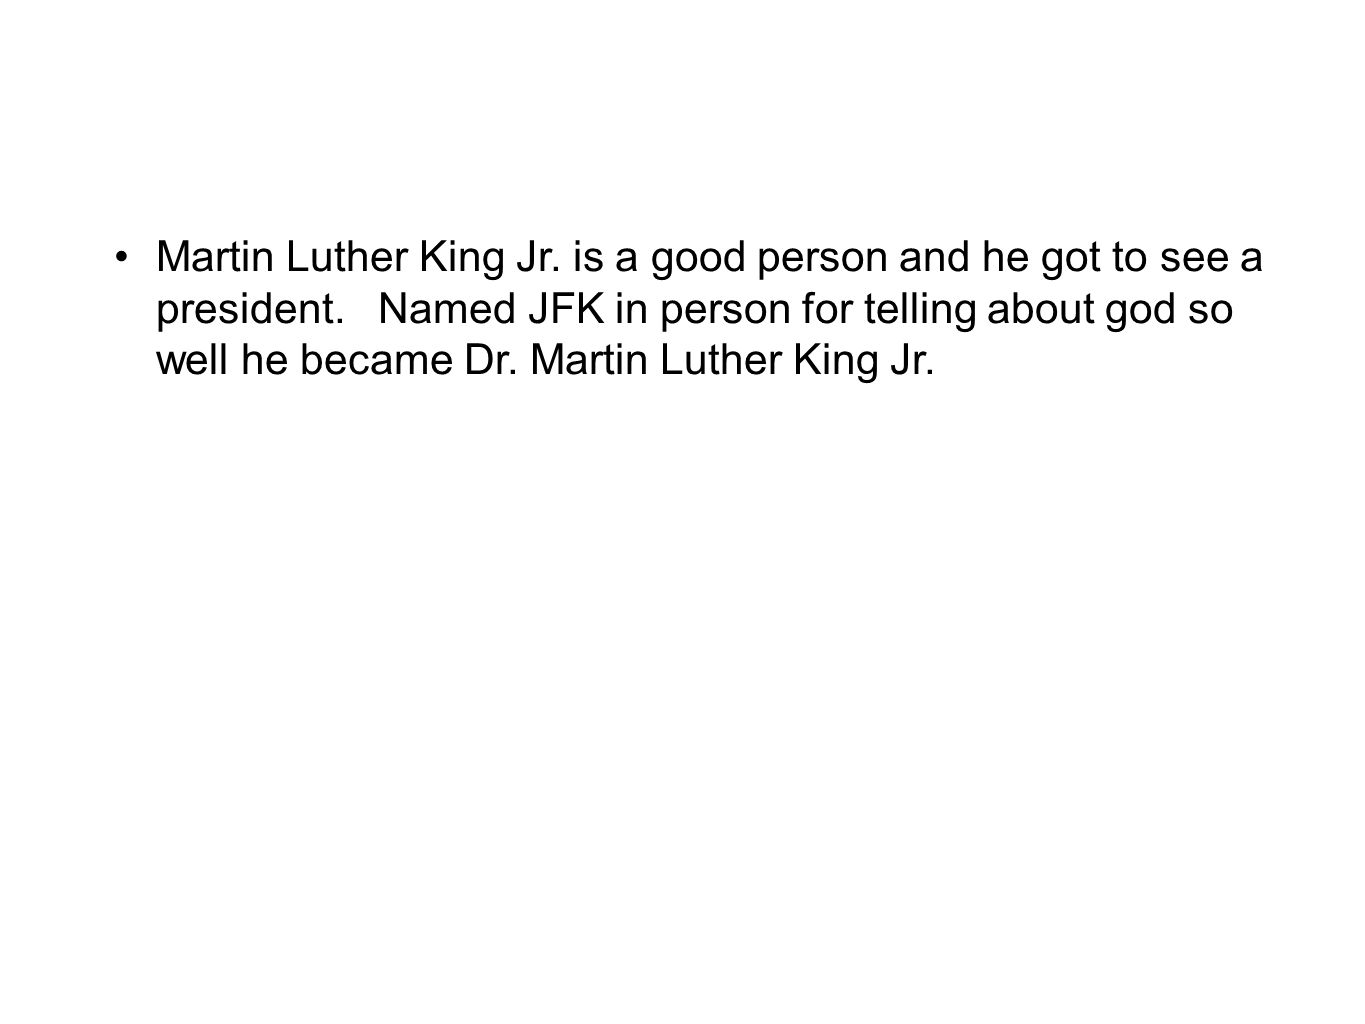 Martin Luther King Jr. is a good person and he got to see a president.